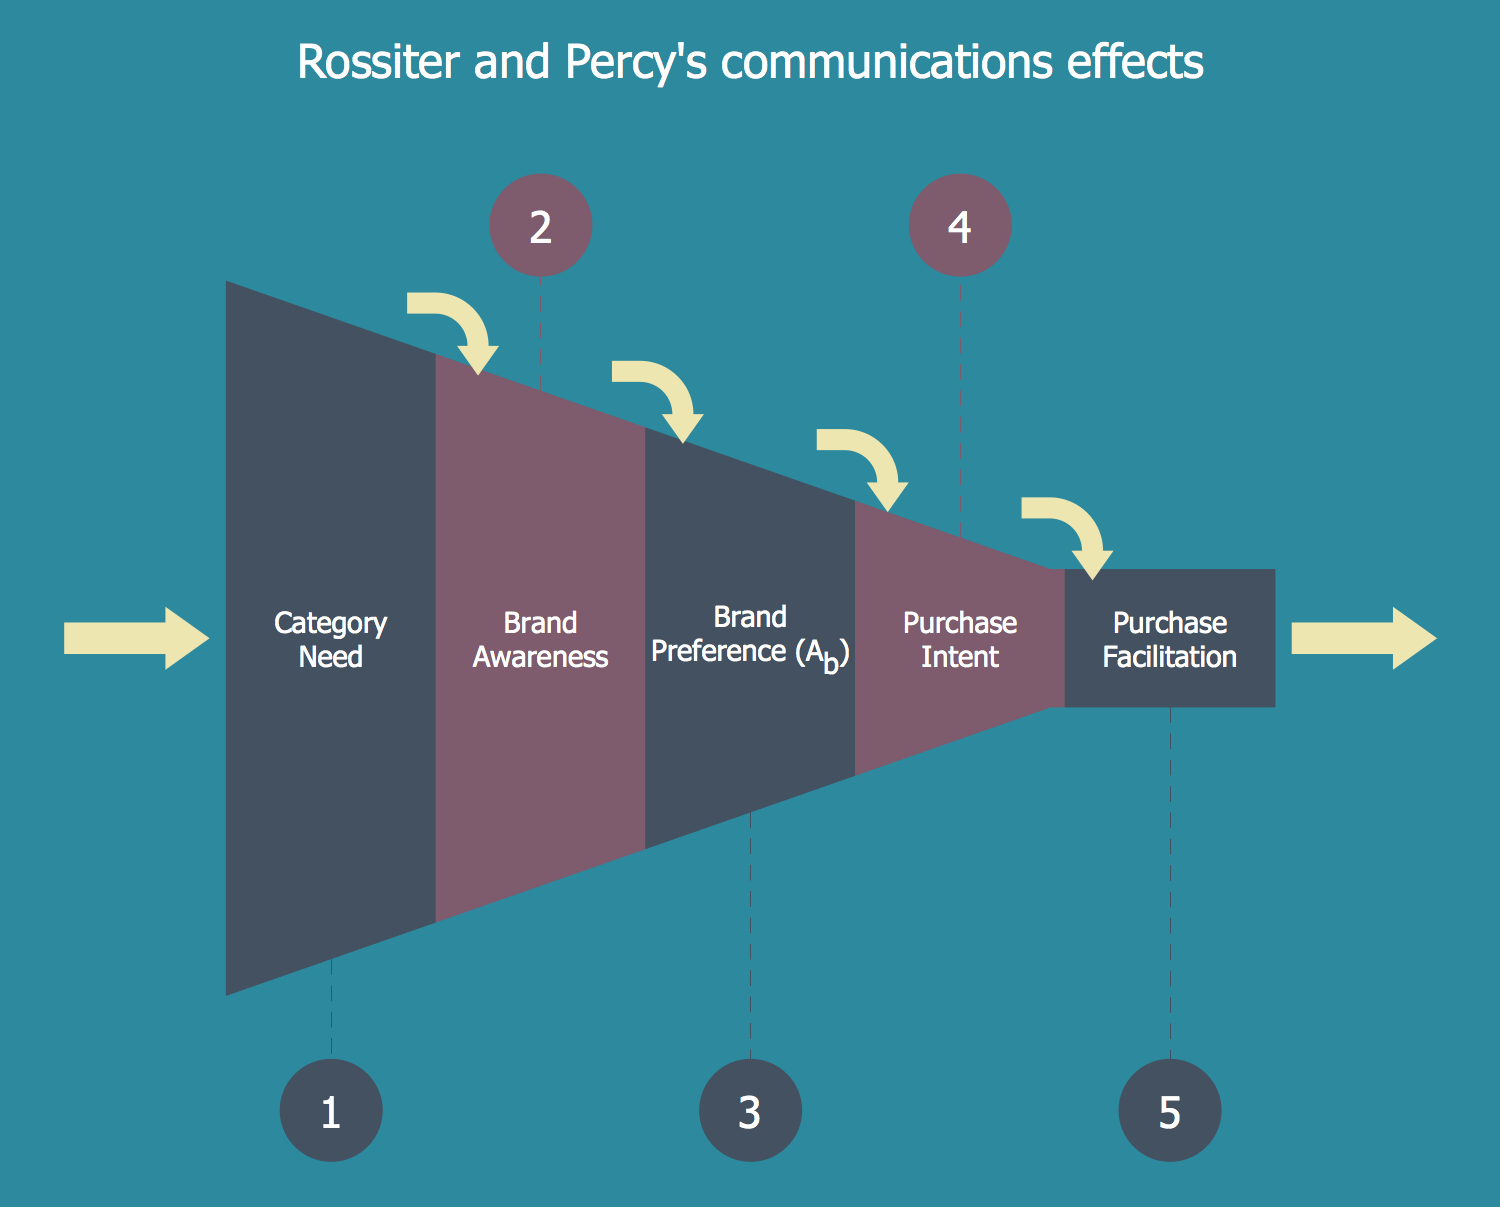 Rossiter and Percy's Communications Effects